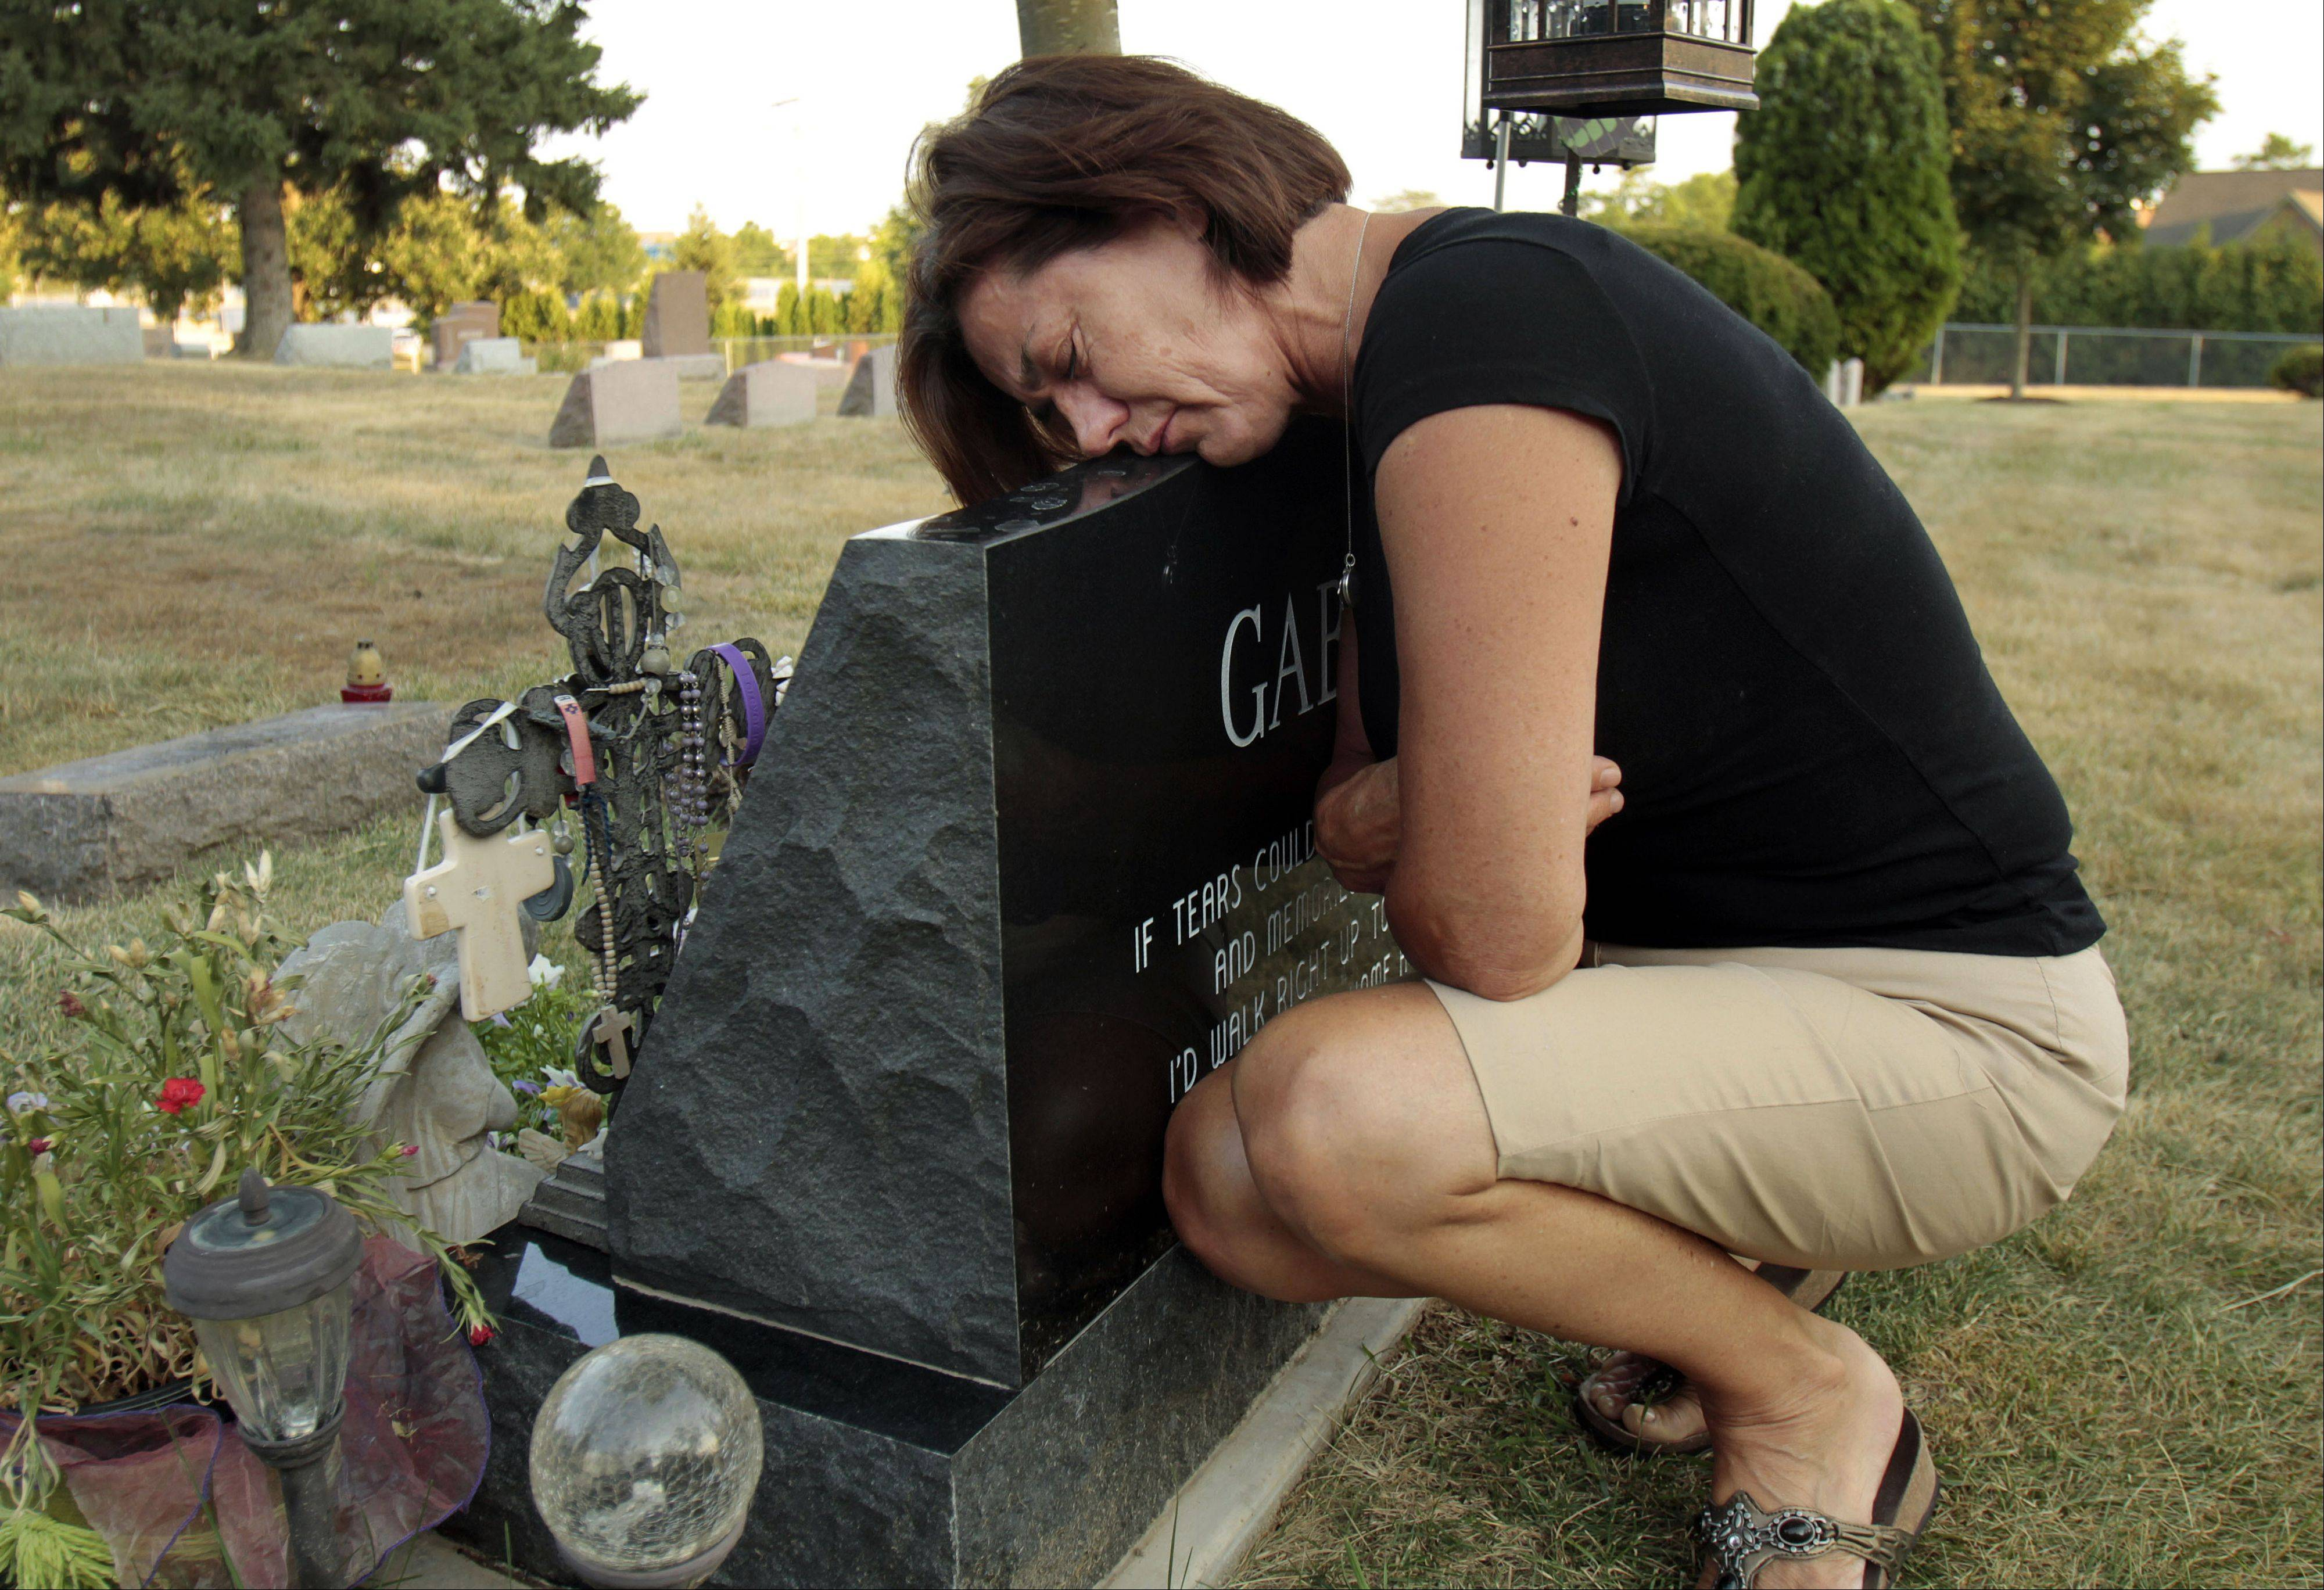 Teresa Drozdz of Lake Zurich rests her head on the grave of her daughter Gabriella Drozdz on the one-year annivesary of Gabriella's death. Gabriella died when a driver struck her while walking down Midloathian Road in Lake Zurich.